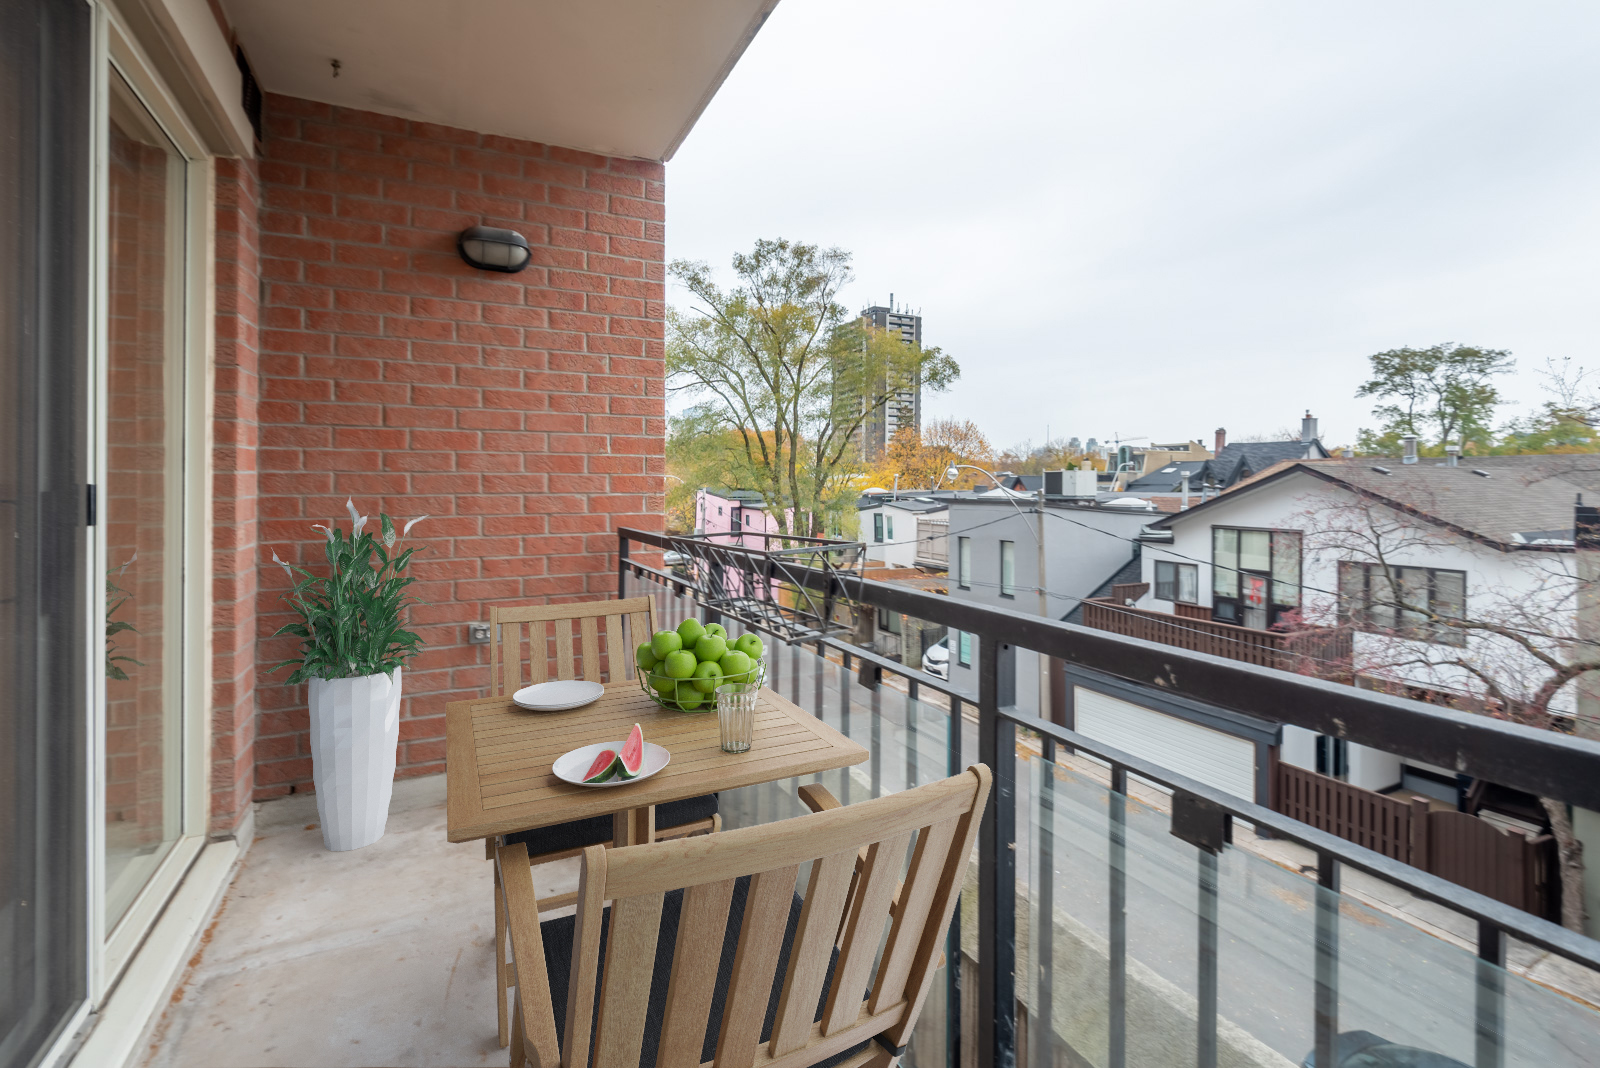 Balcony view of Yorkville streets from McMurrich Residences with 3D table and chairs and fruit.